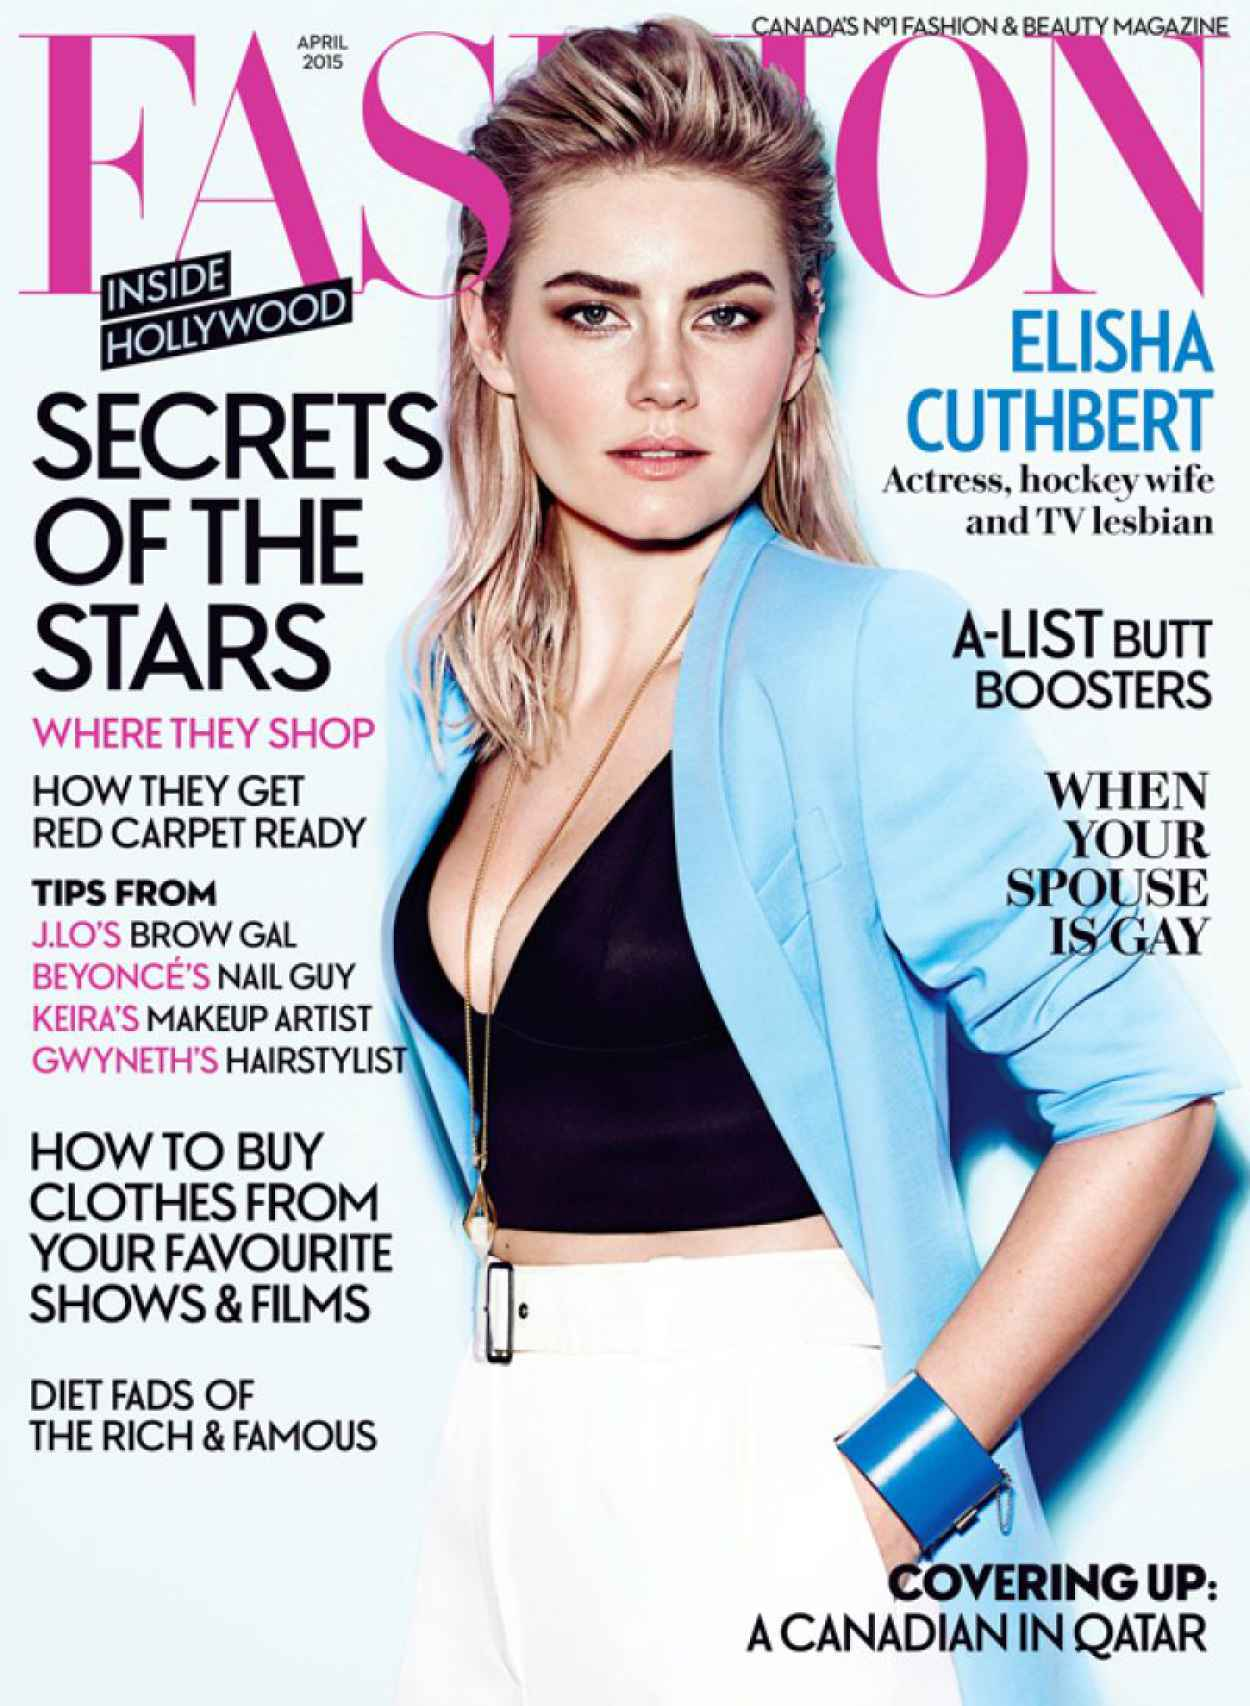 Elisha Cuthbert - Fashion Magazine April 2015 Cover and Photo-1